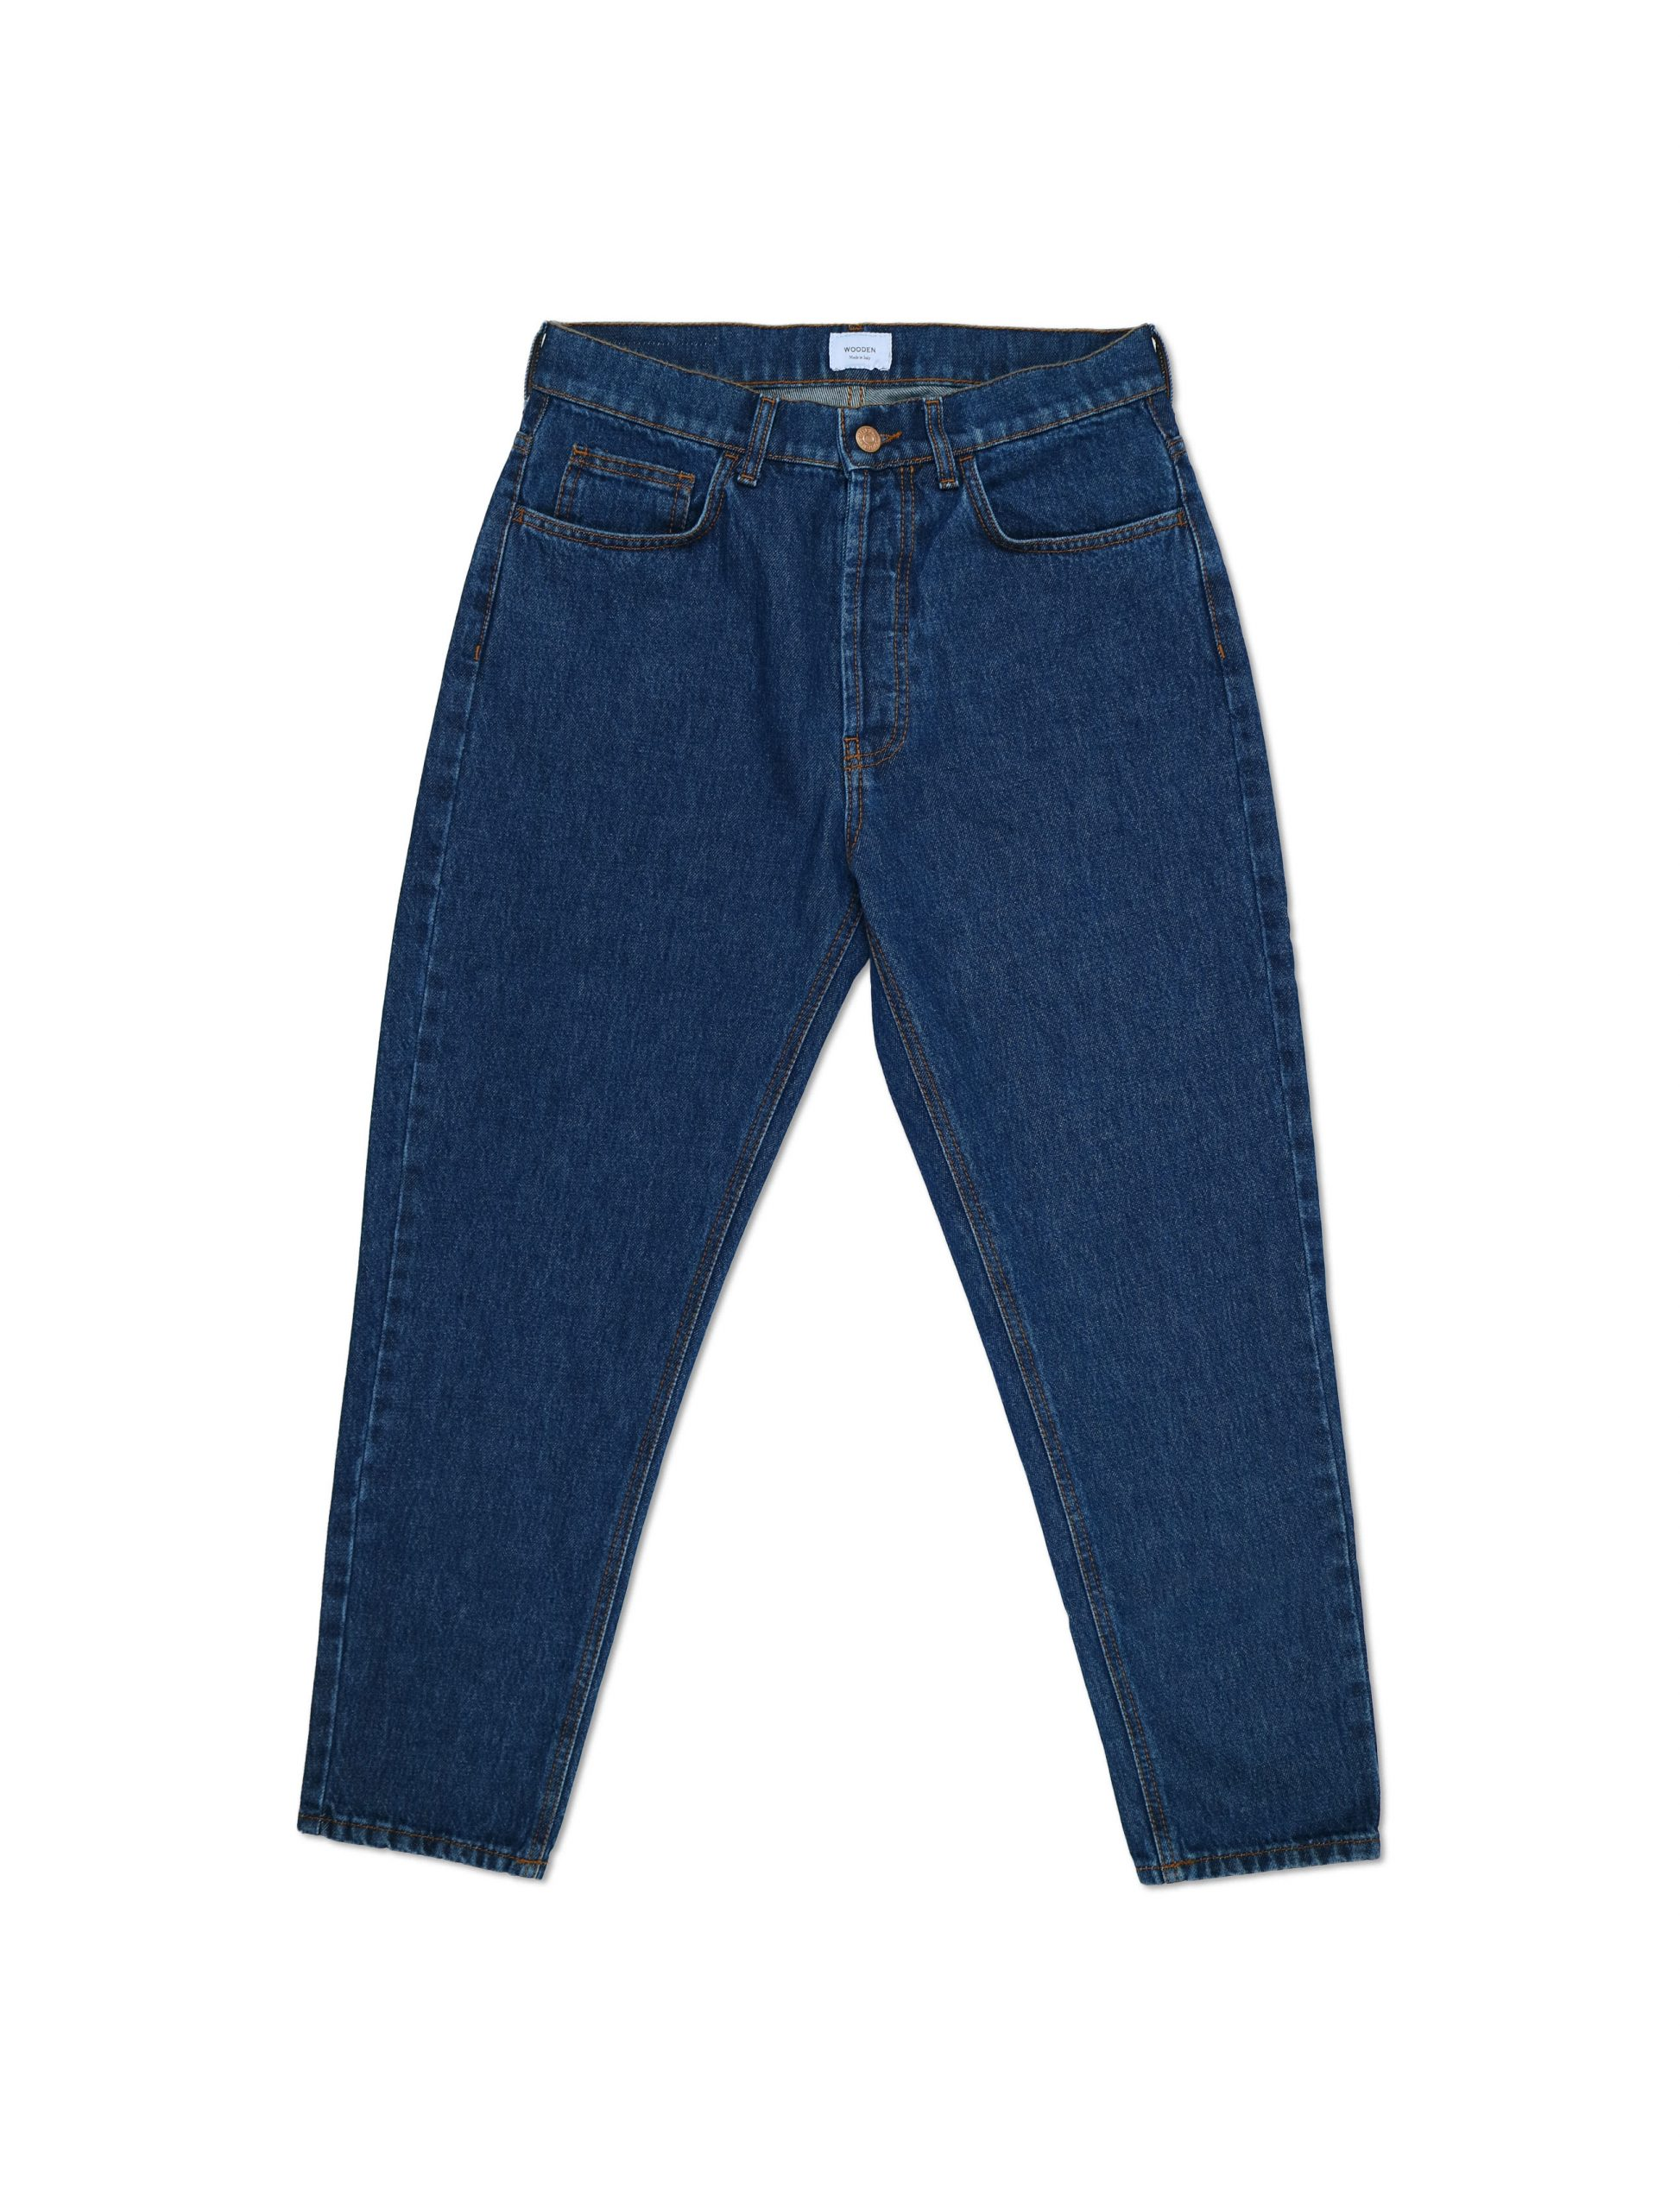 Jeans Replica Blue | Wooden Store